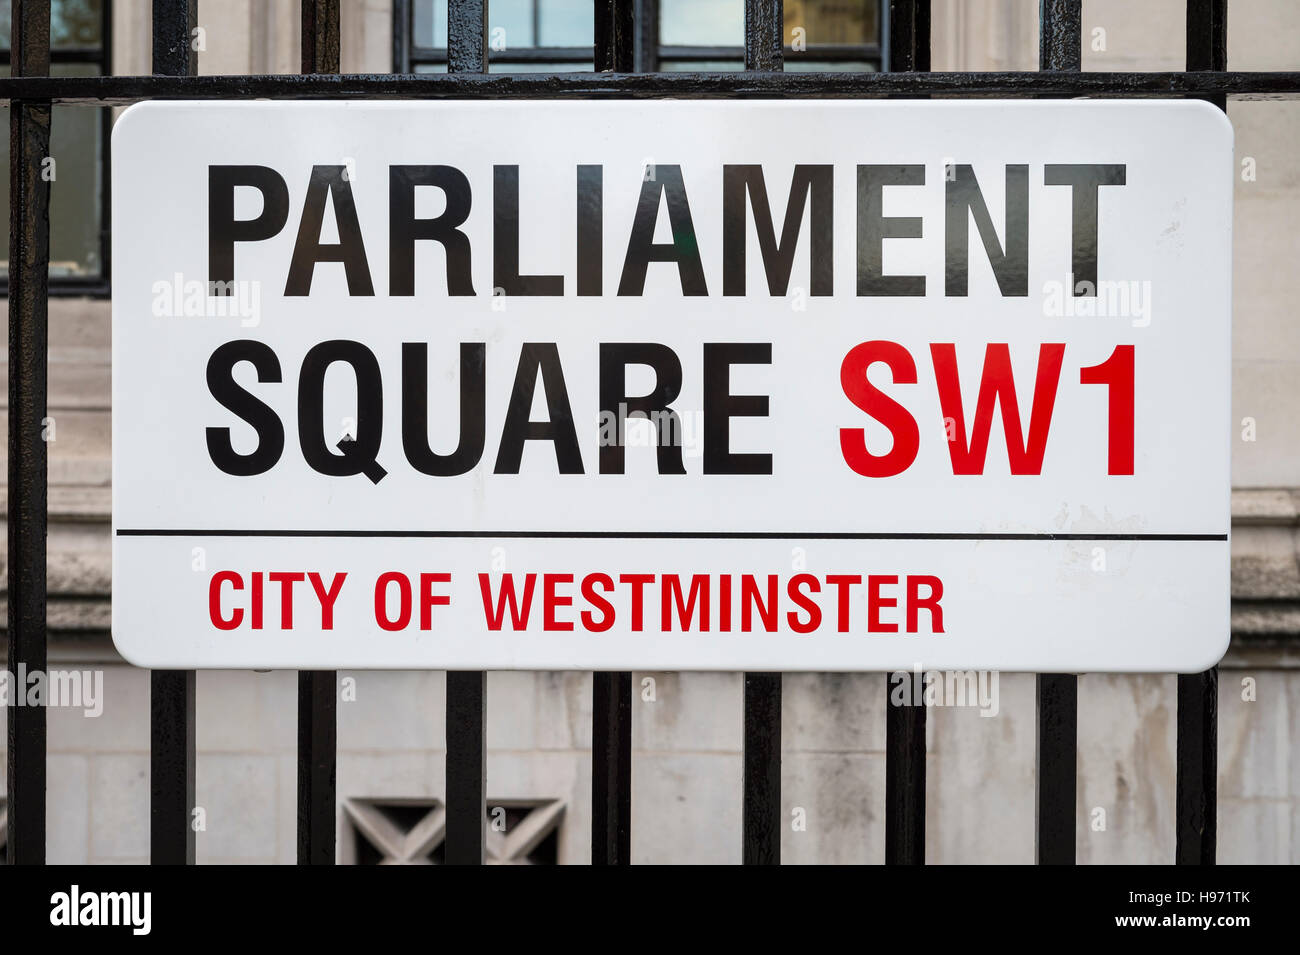 LONDON - NOVEMBER 16, 2016: Street sign for Parliament Square marks the open space between Westminster and the Supreme - Stock Image